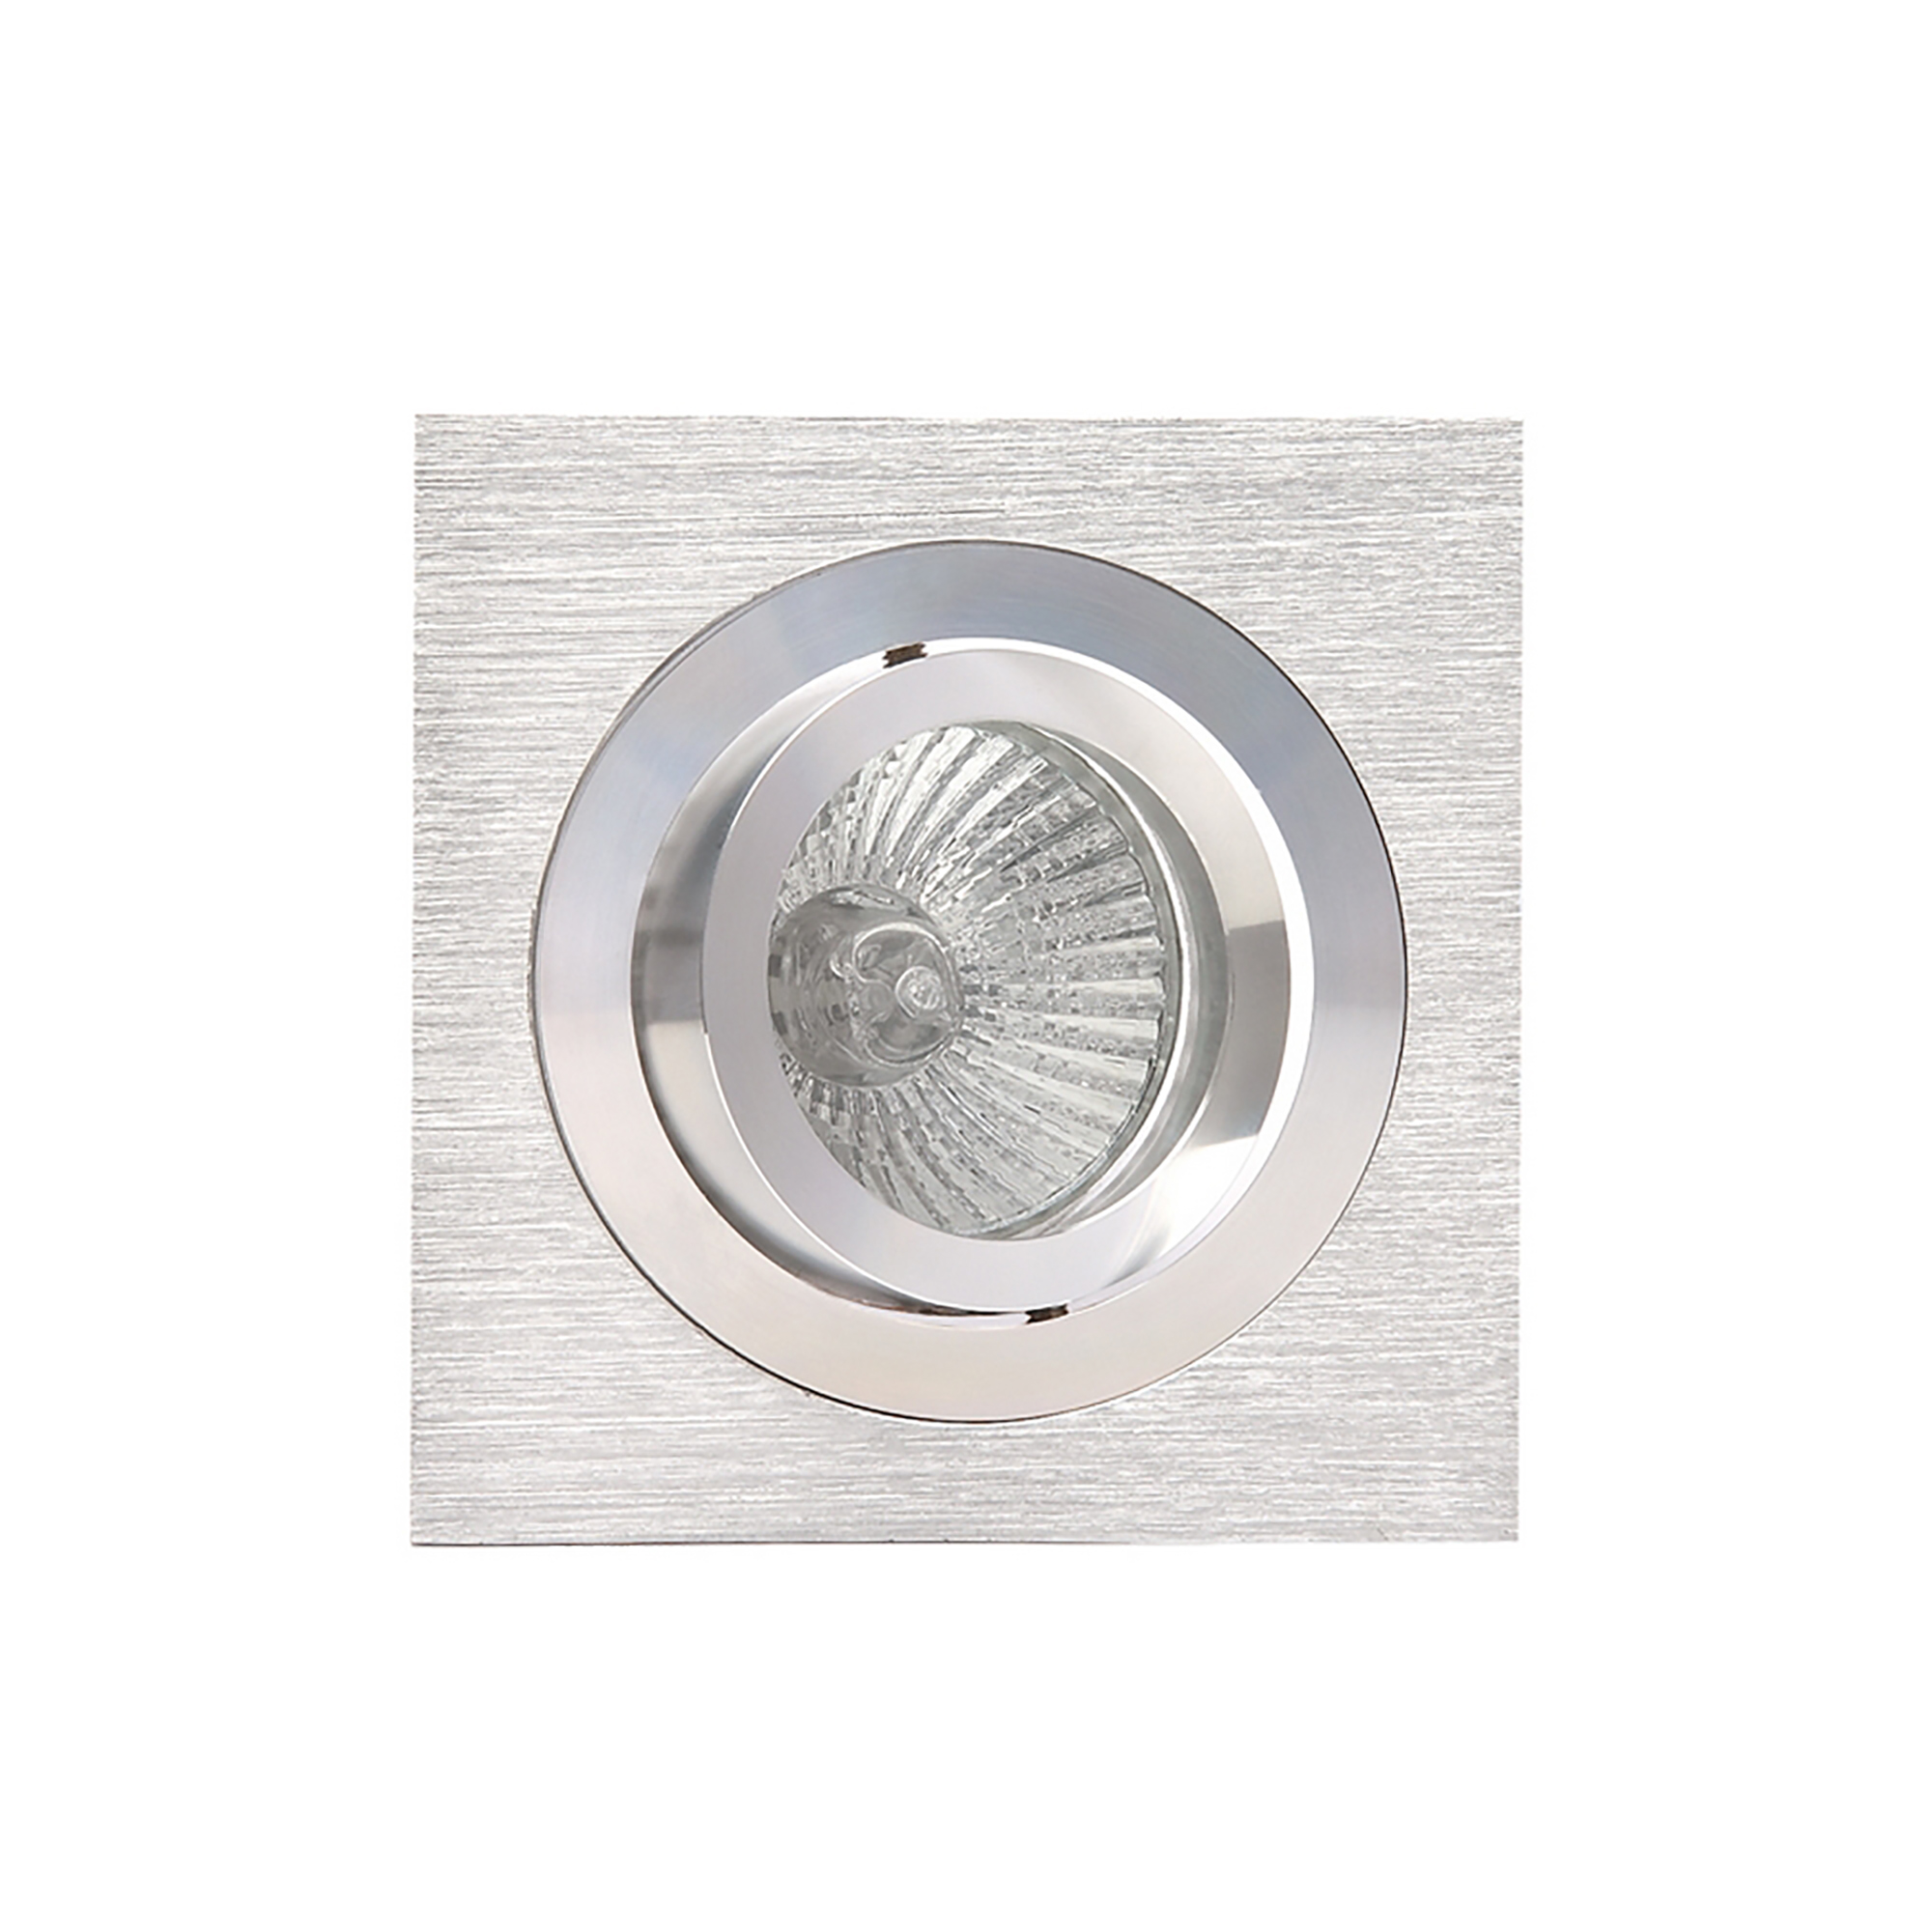 Basico GU10 Ceiling Lights Mantra Fusion Recessed Lights